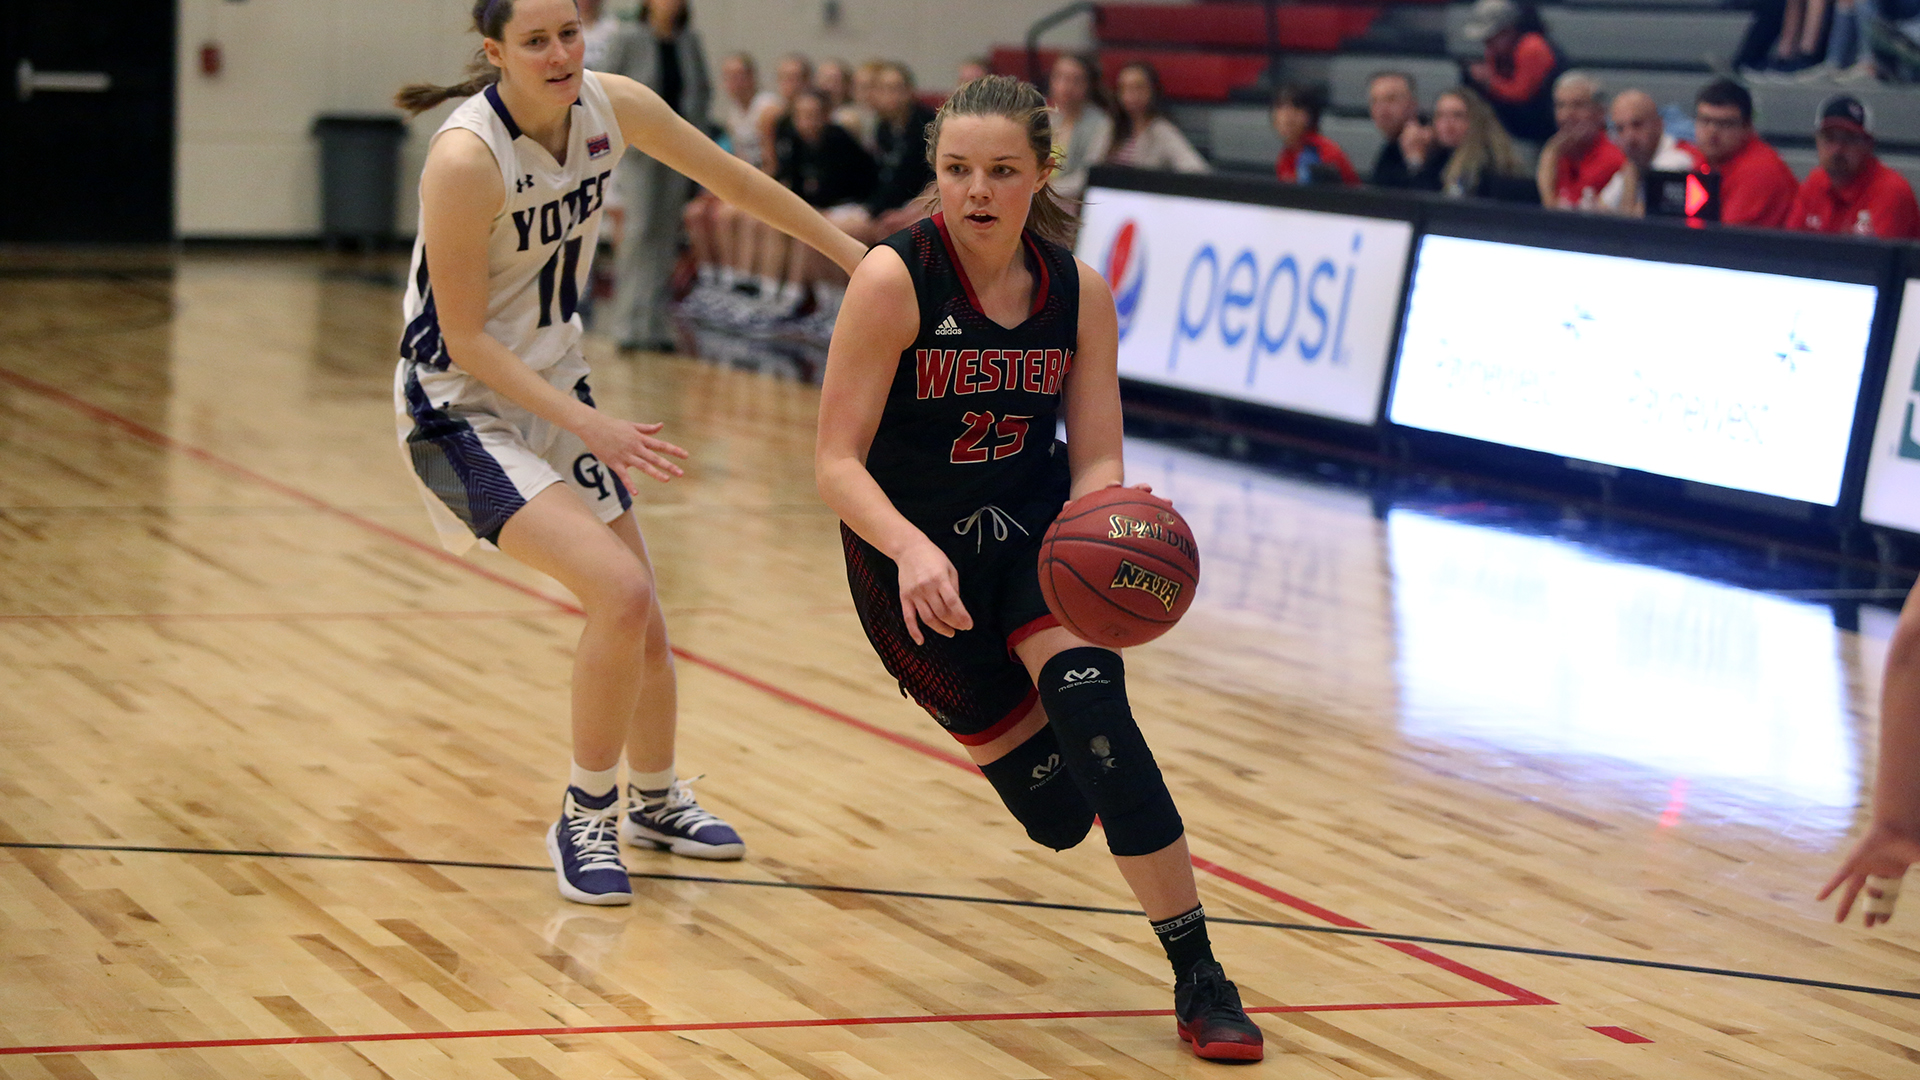 U High Basketball Roster Shannon Worster - Wome...